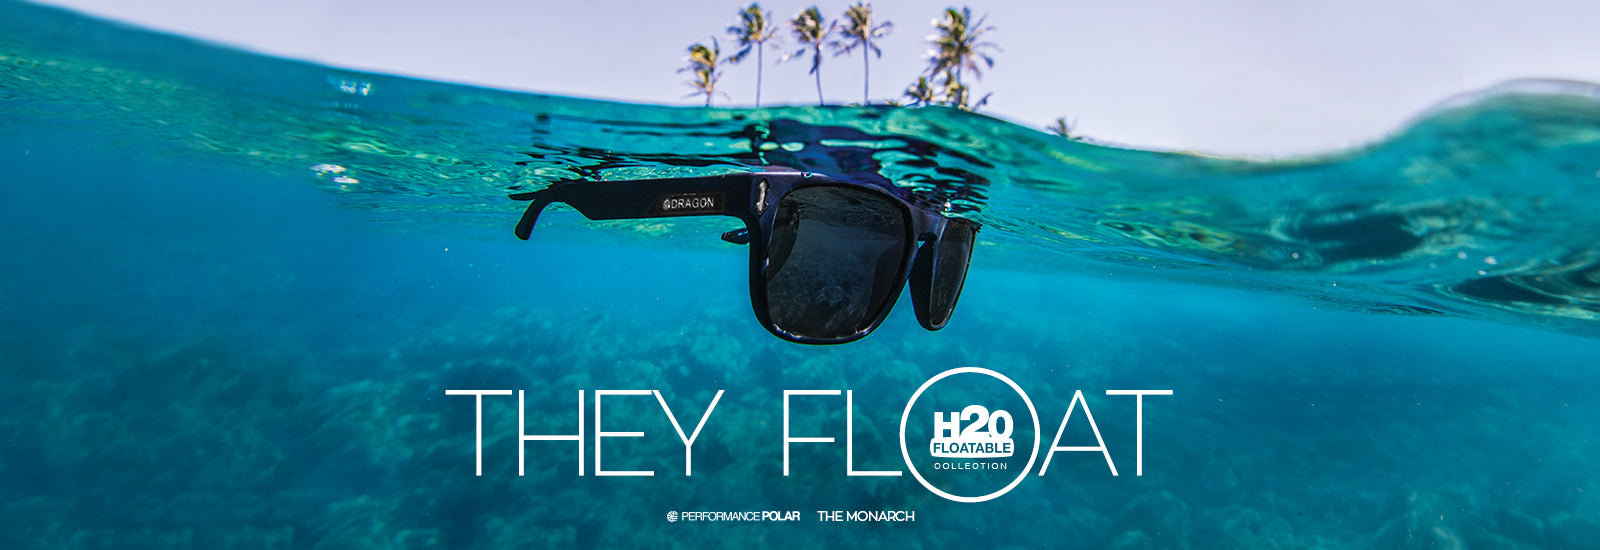 77c60084e81 THEY FLOAT - The dream product for watermen and women who enjoy an active  lifestyle